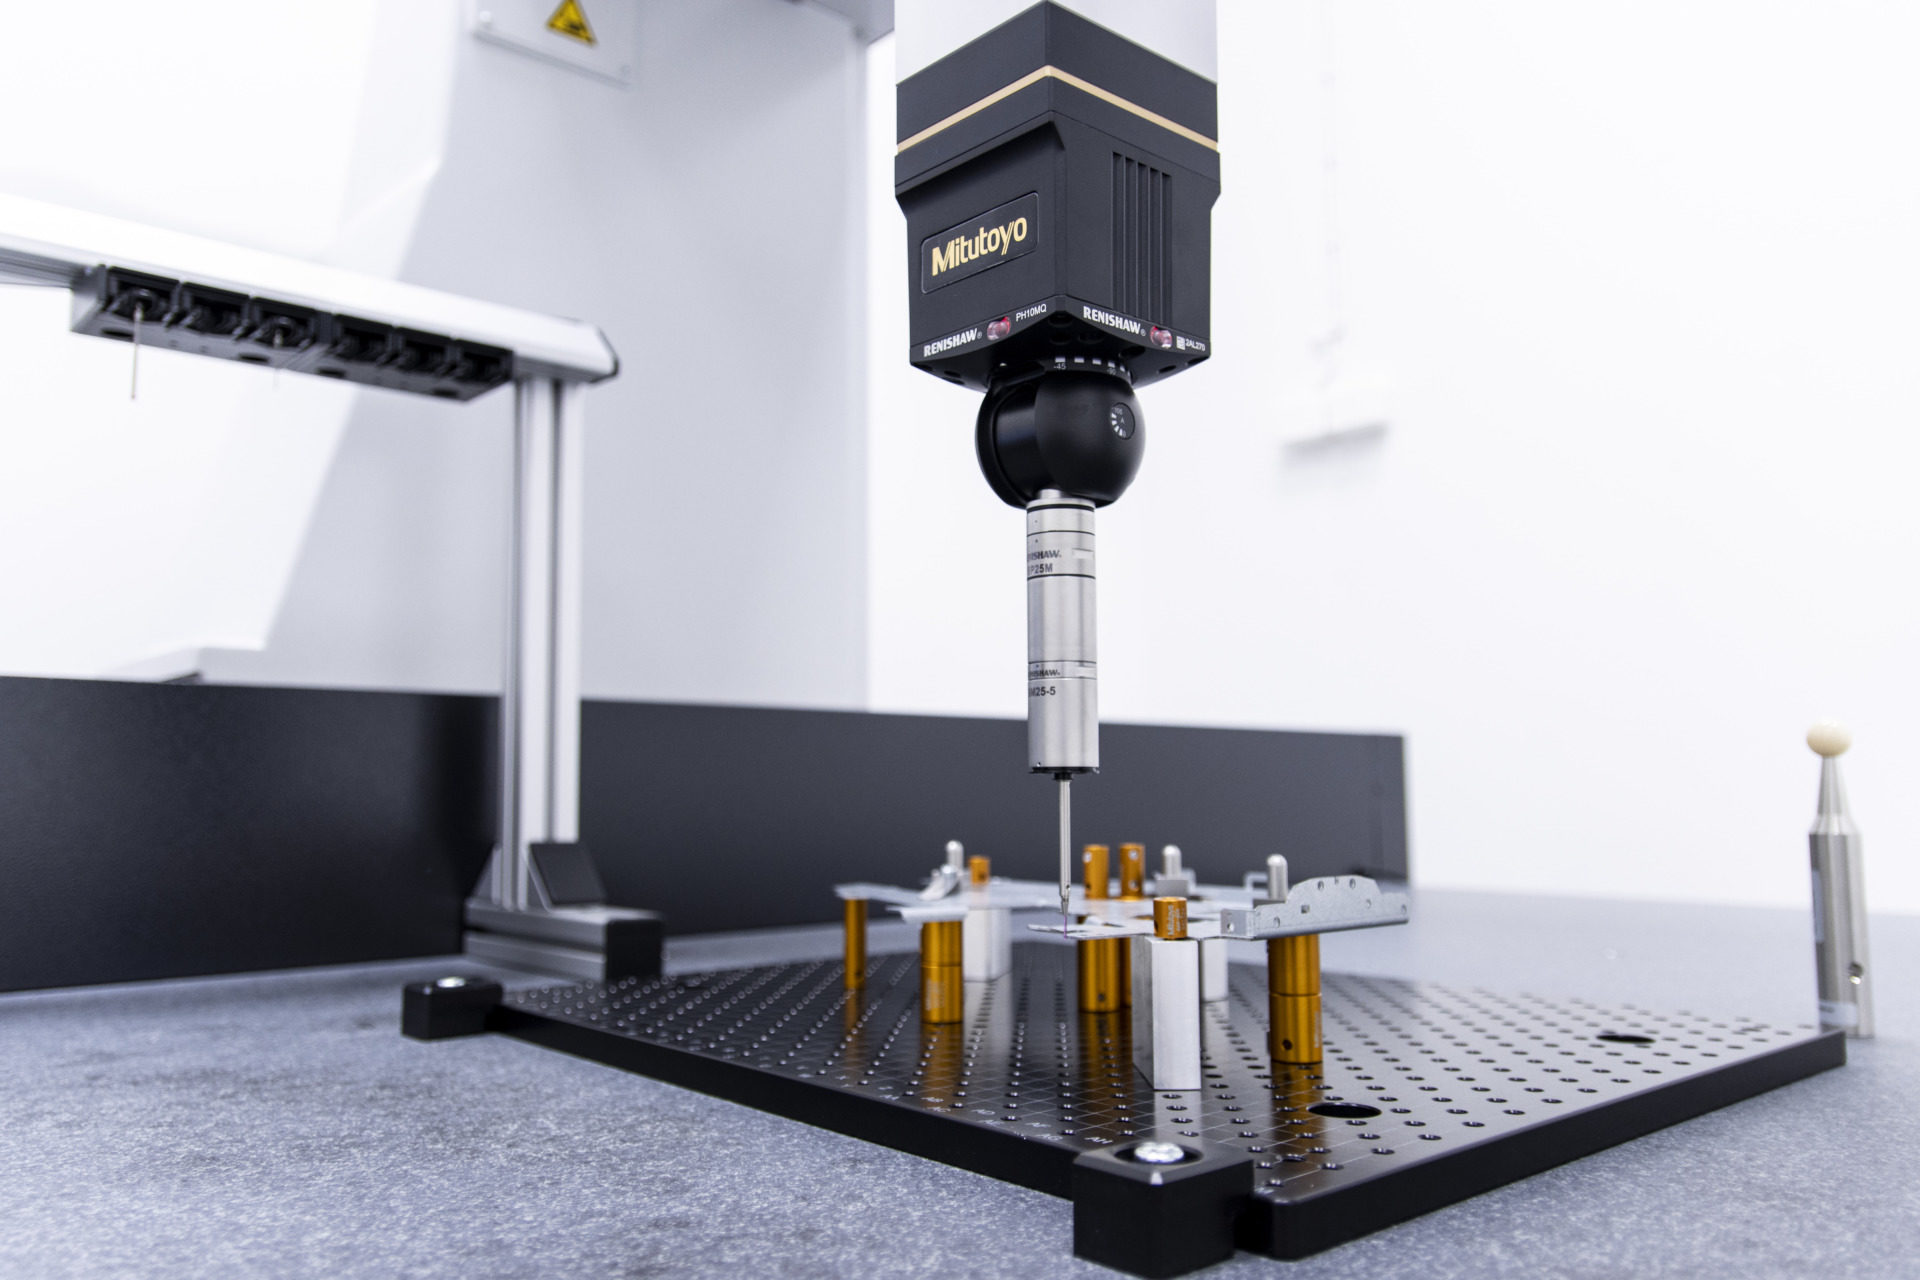 Coordinate measuring machine with product